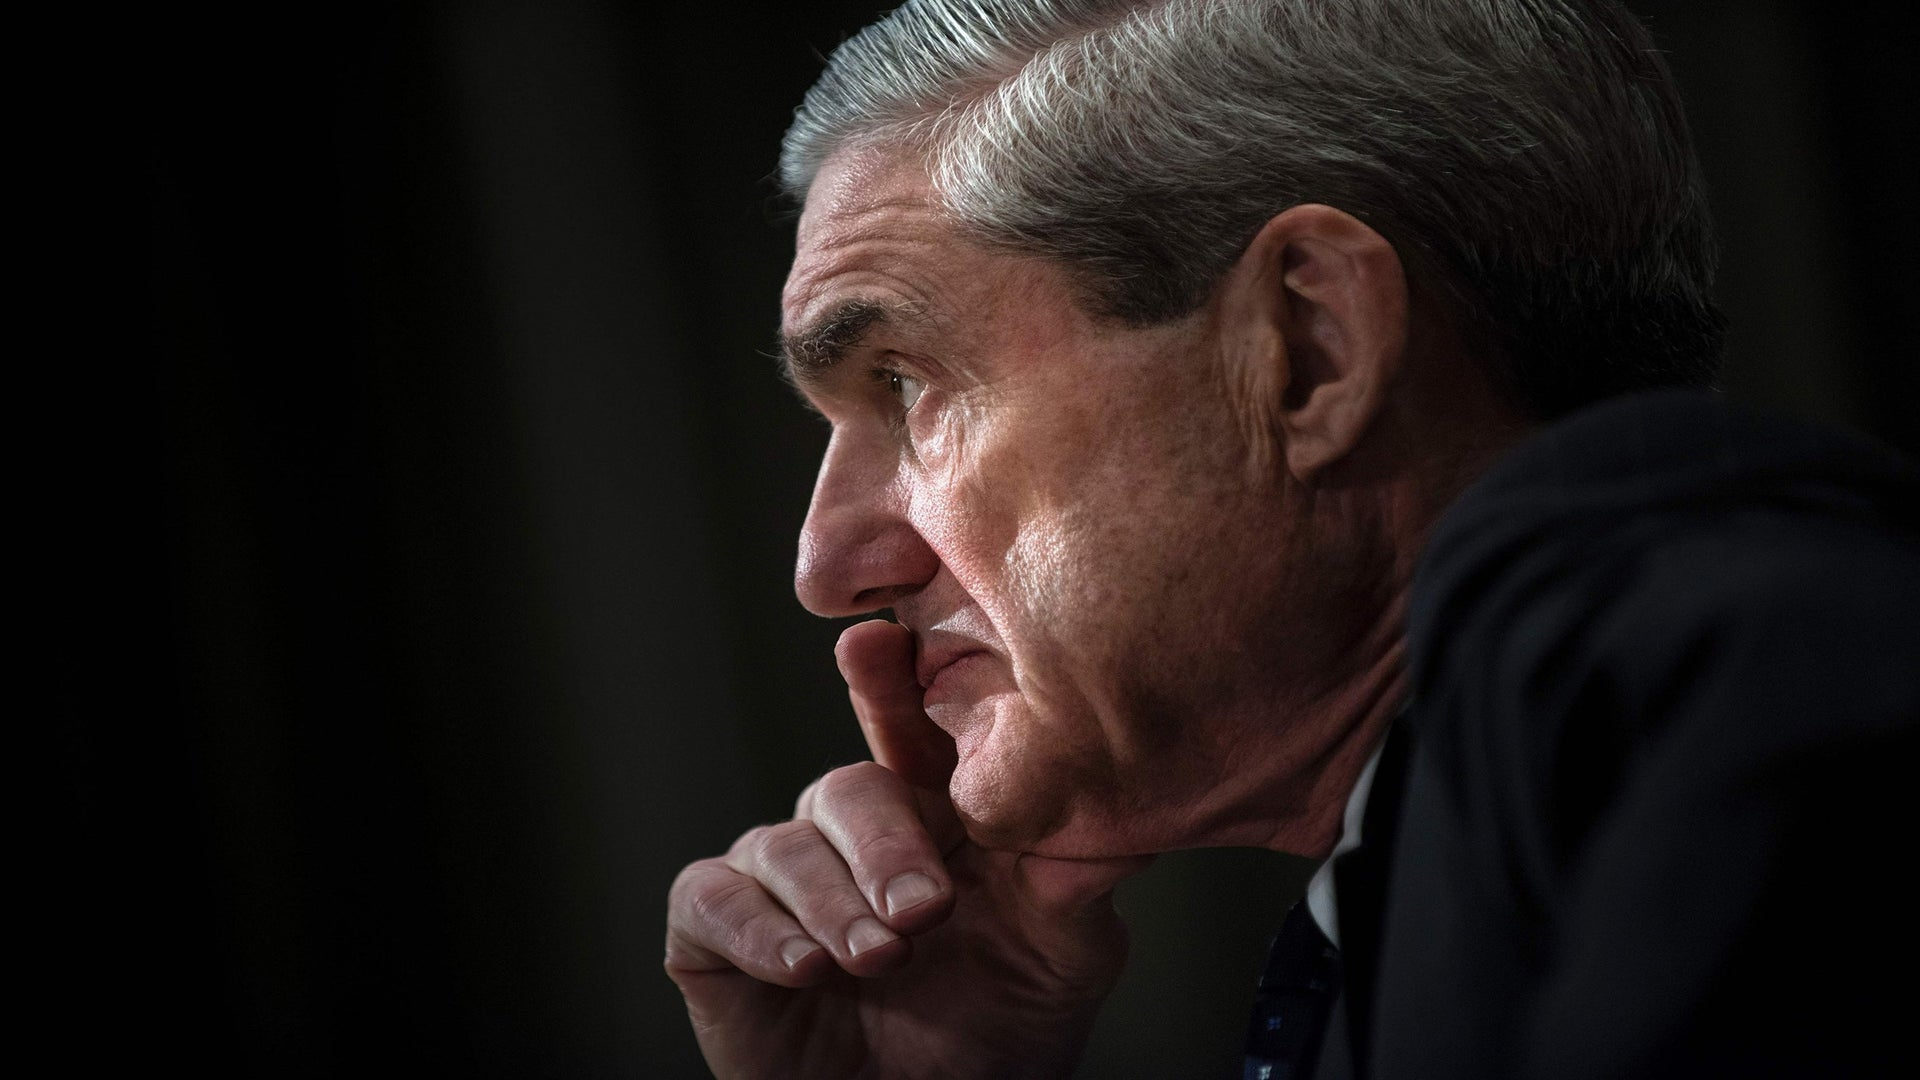 President Trump's Legal Team Is Looking To Investigate Mueller Aides